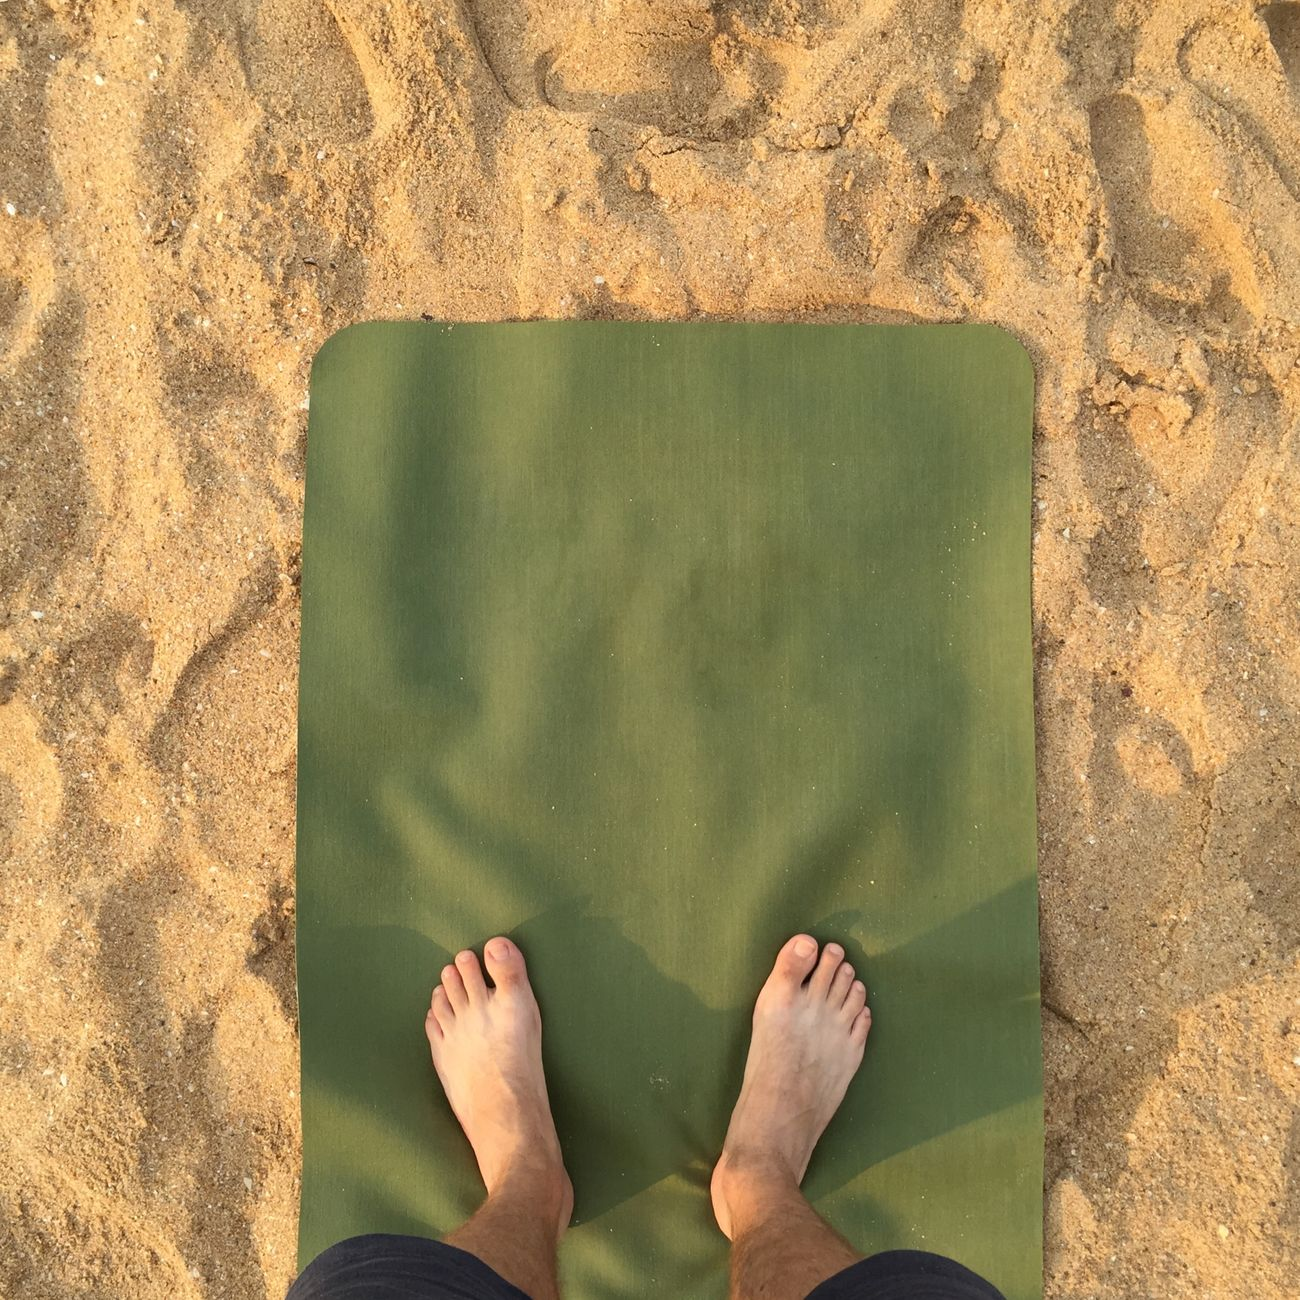 Everyday Joy Yoga on the Beach Floortraits